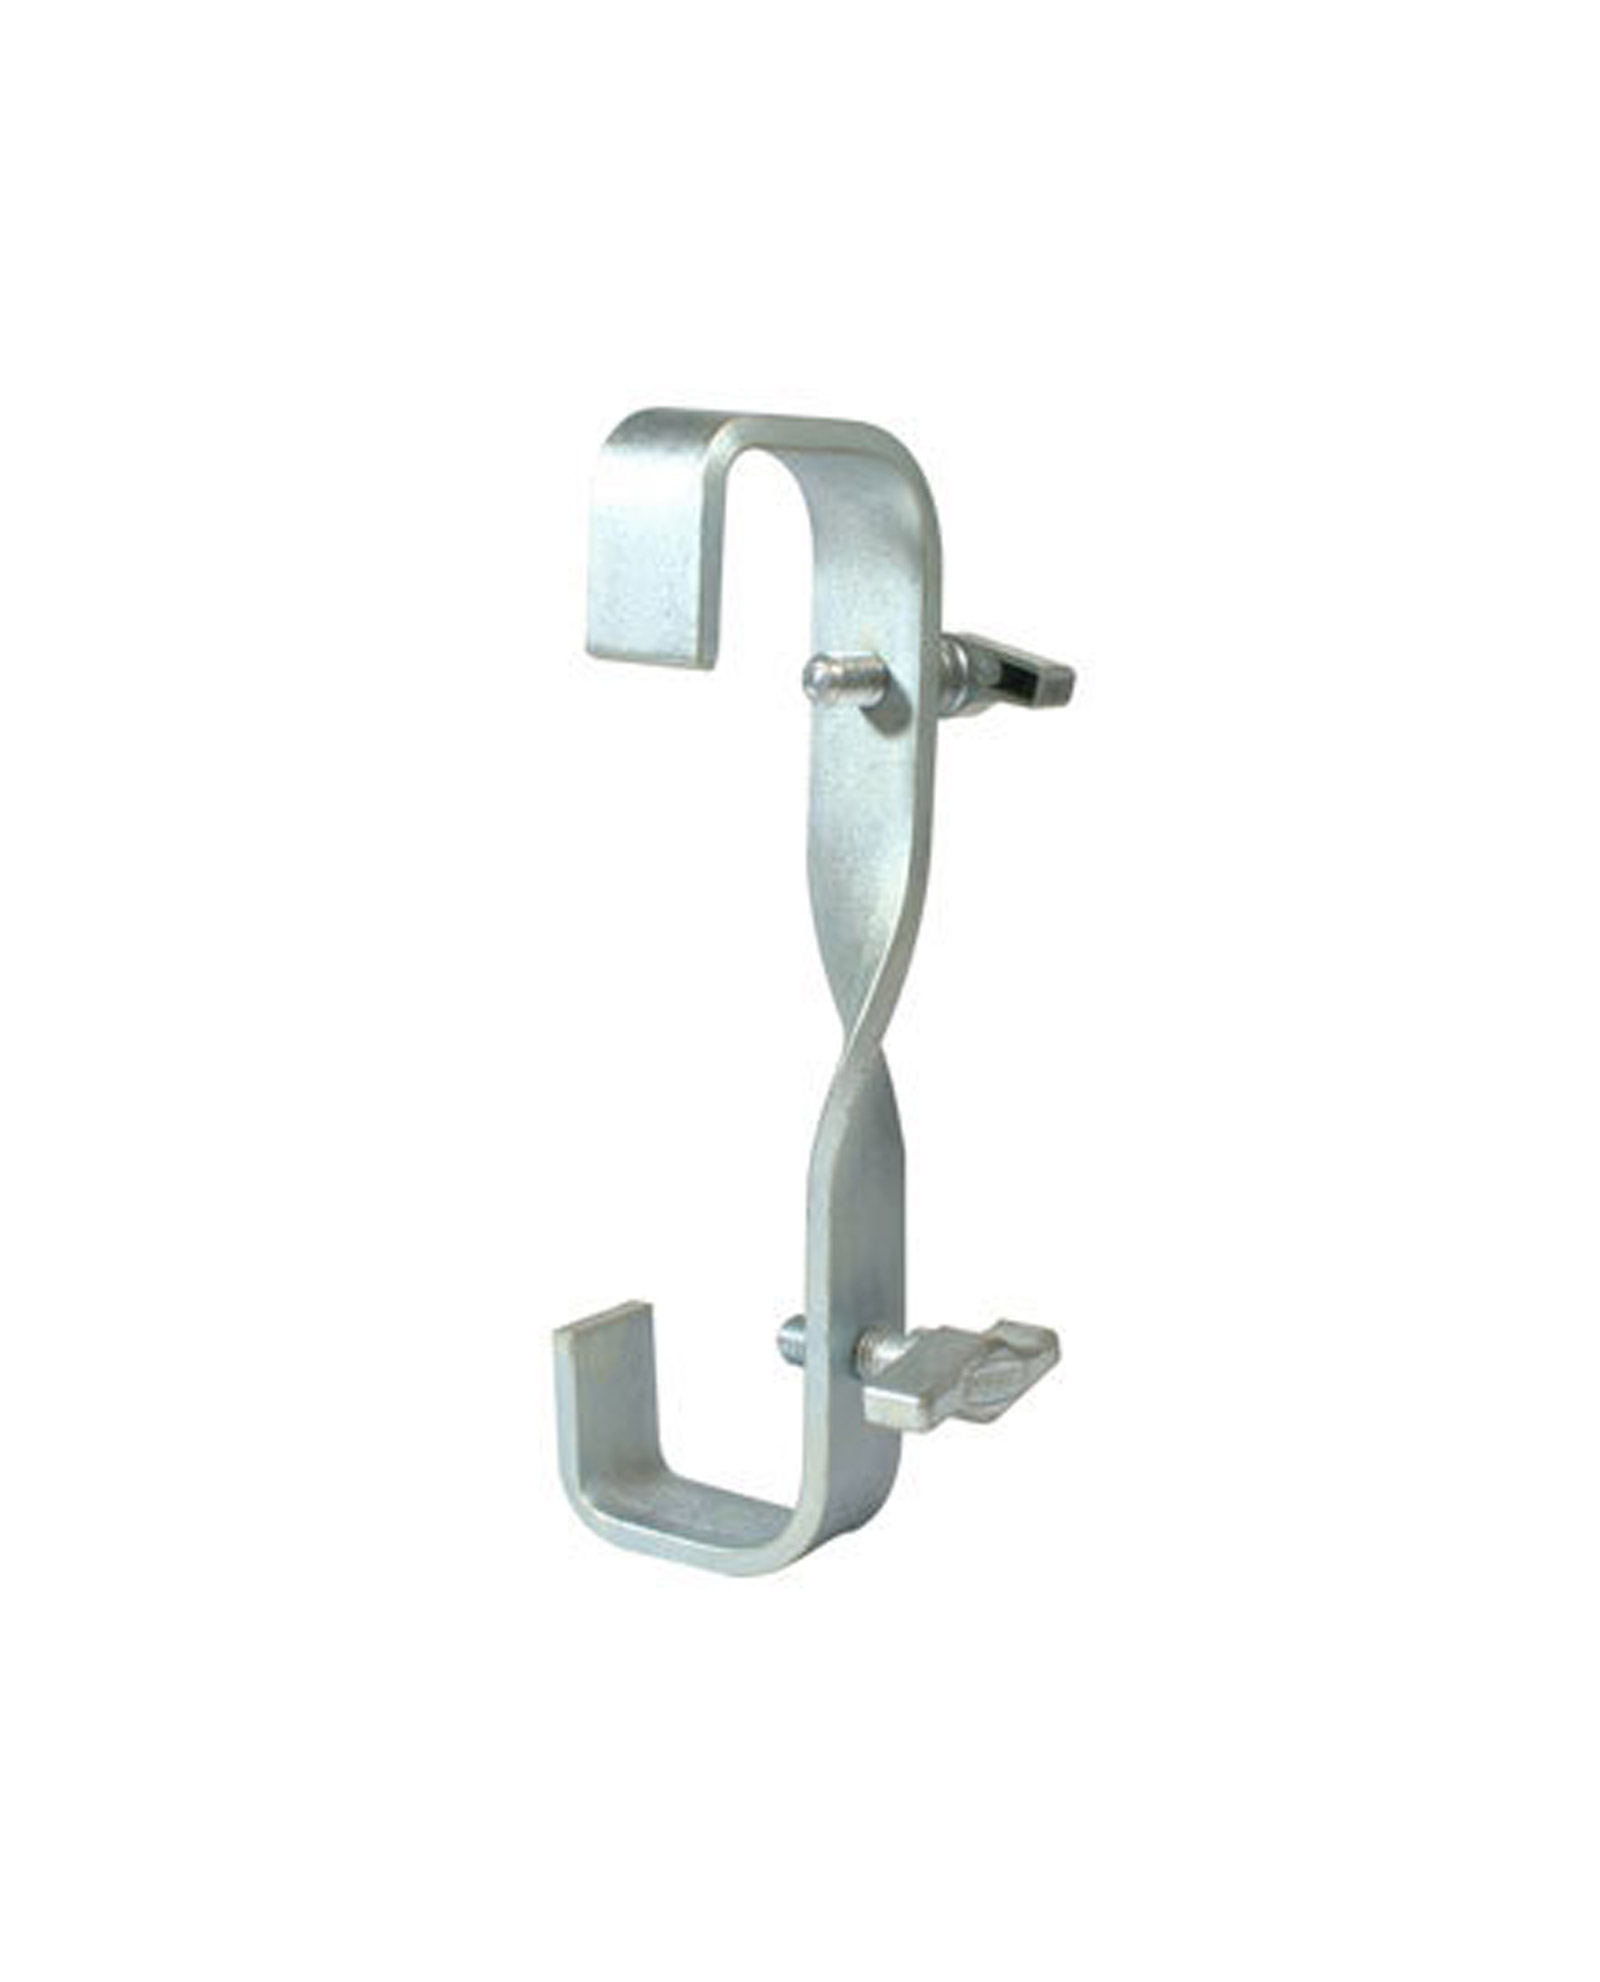 Doughty T21700 Double Ended Hook Clamp 300mm With 90 Degree Twist